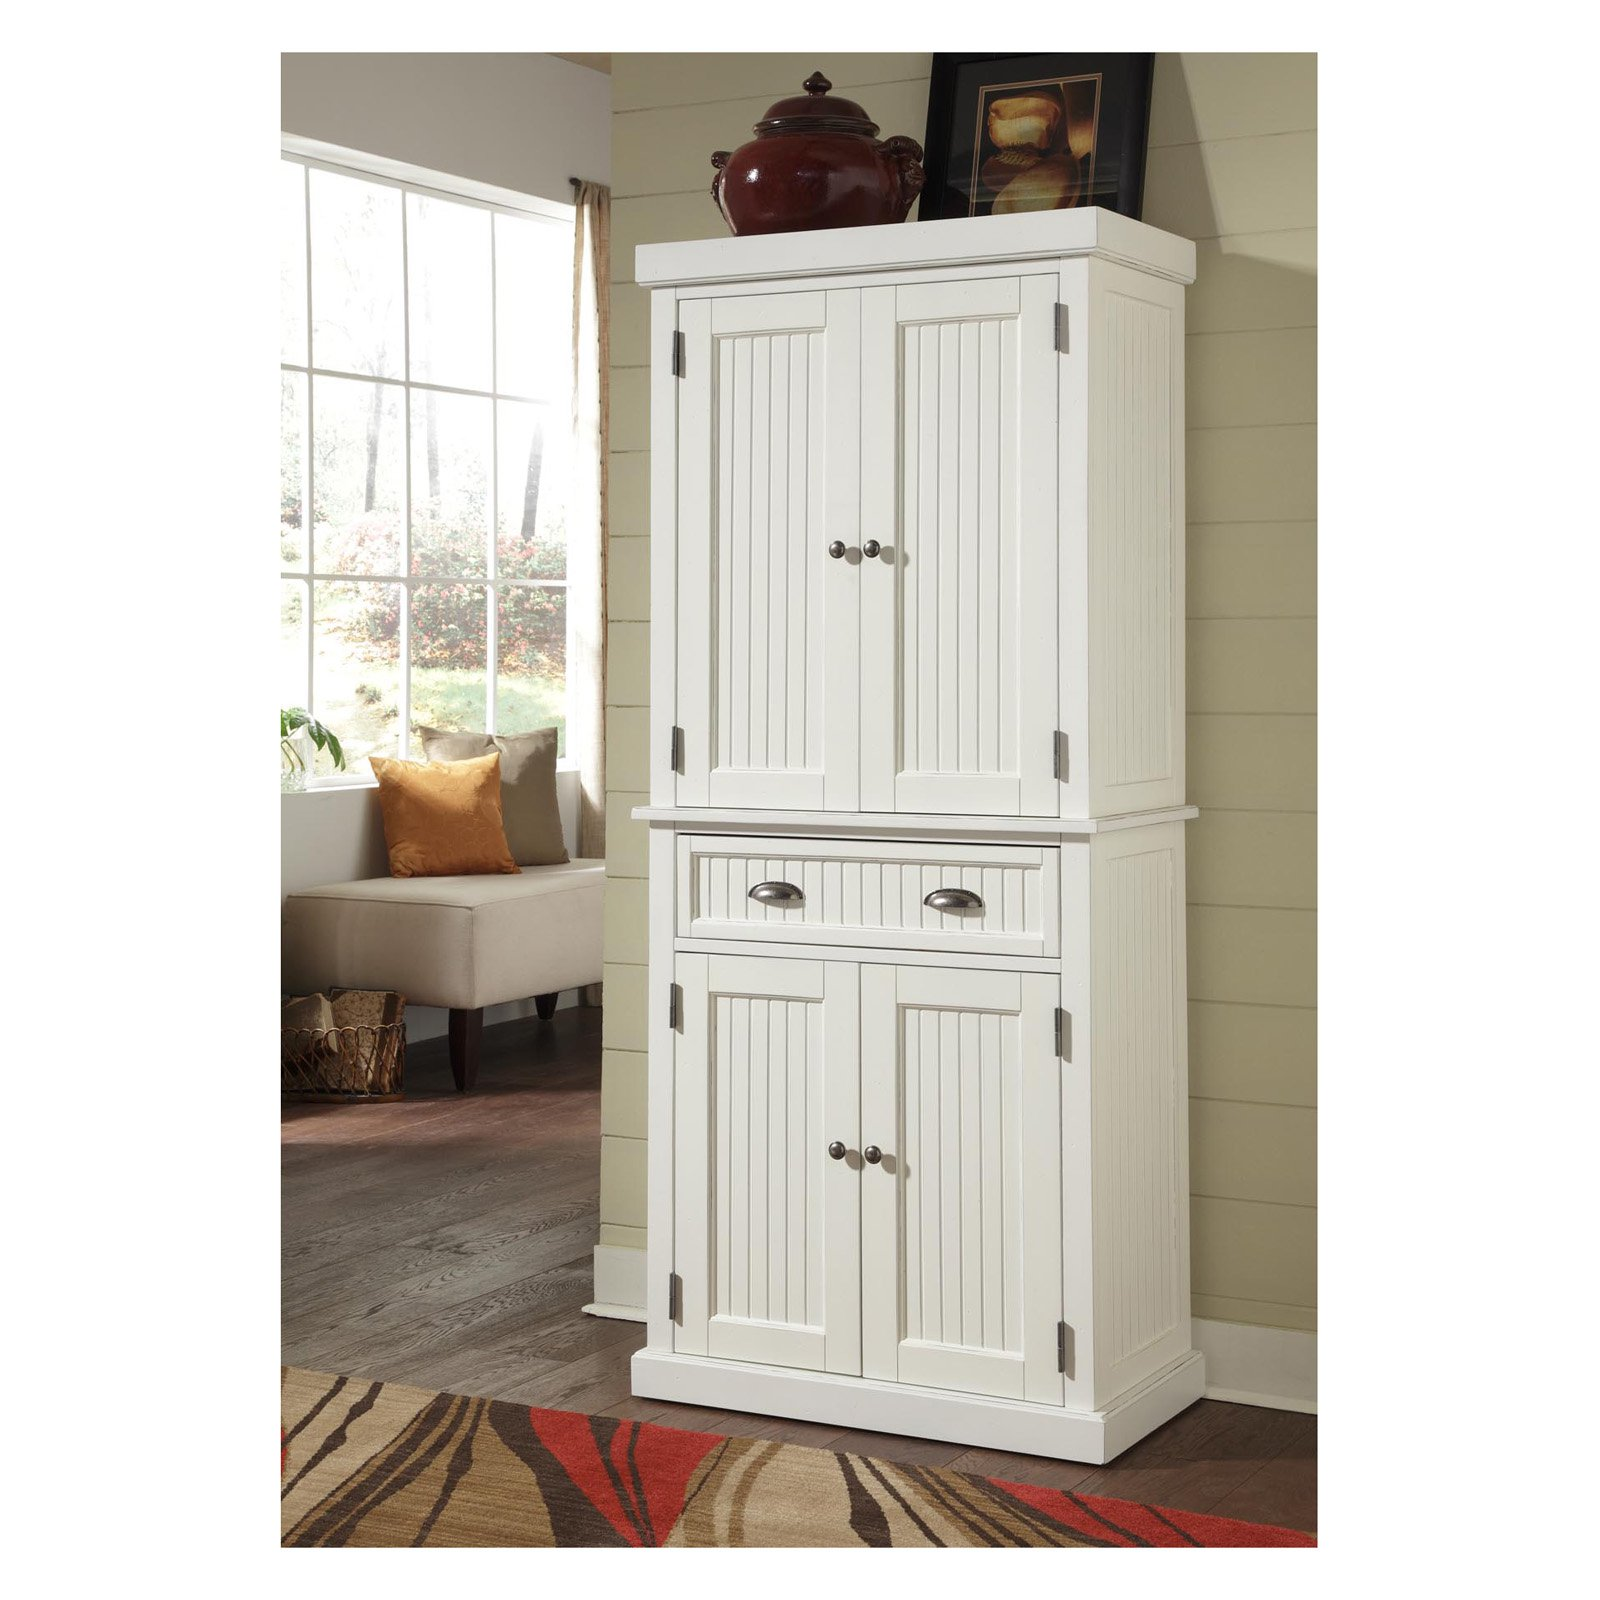 Home Styles Nantucket Pantry White, Distressed